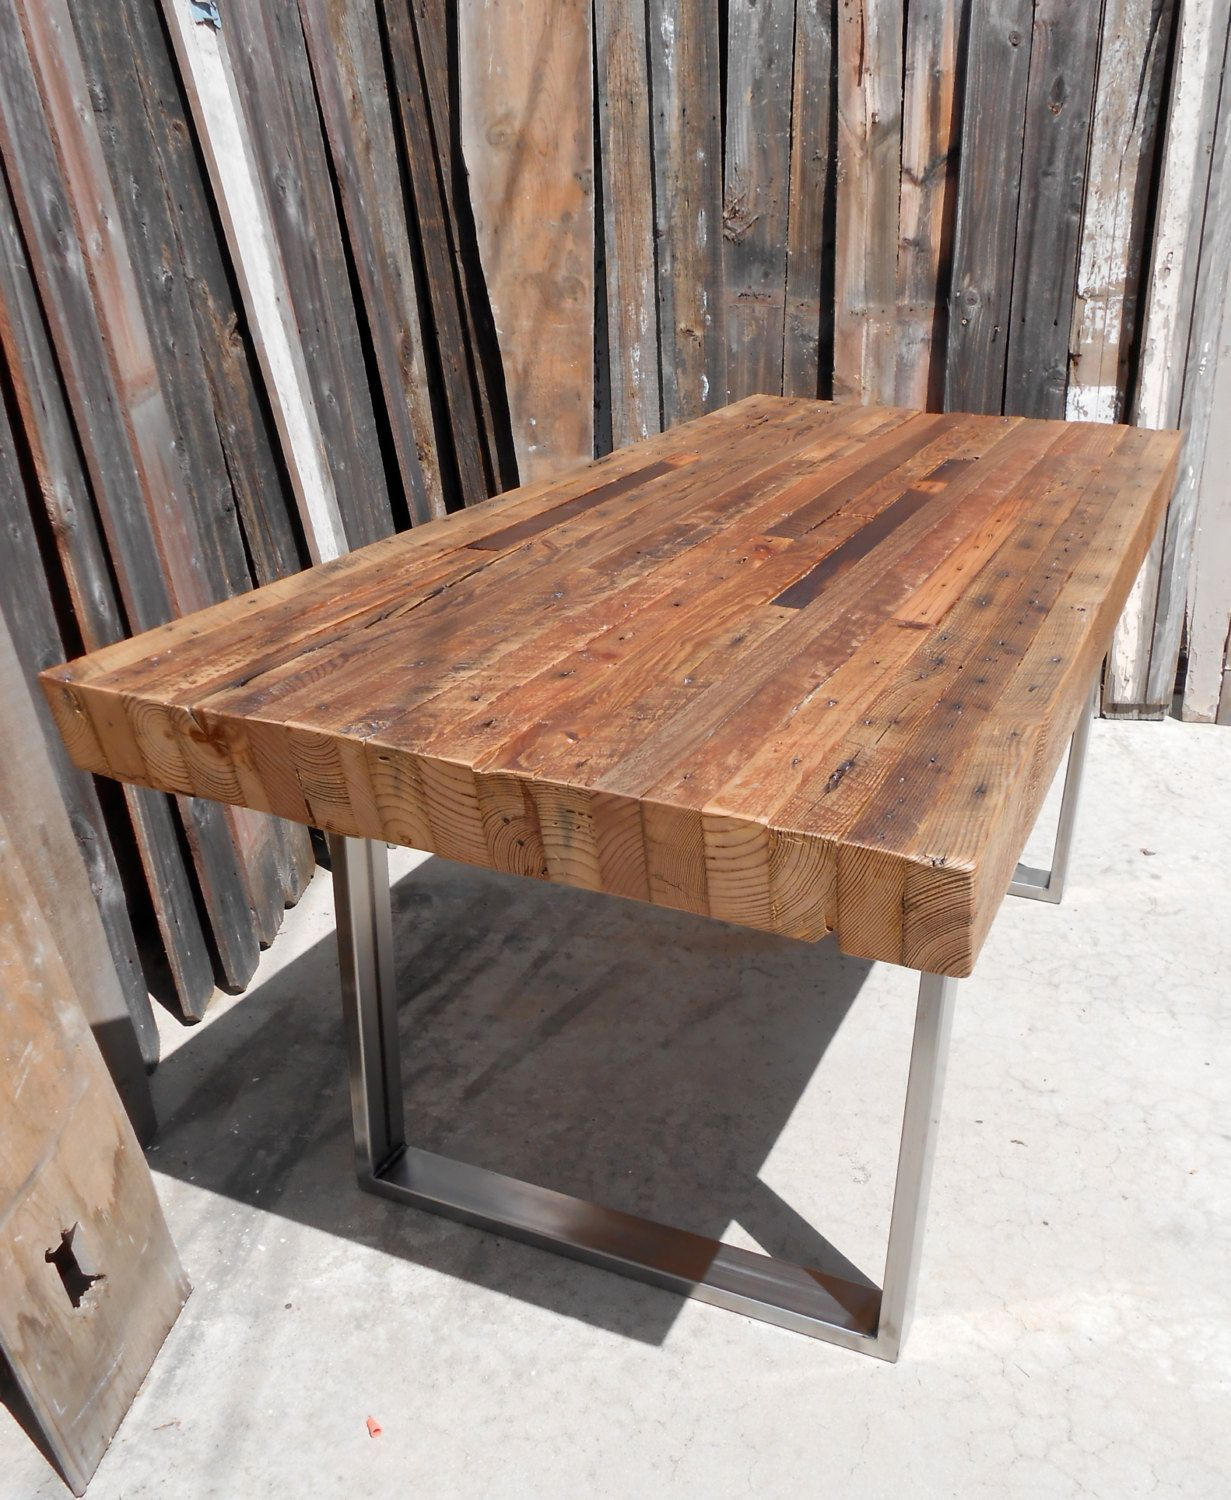 custom outdoor/ indoor exposed edge rustic industrial reclaimed